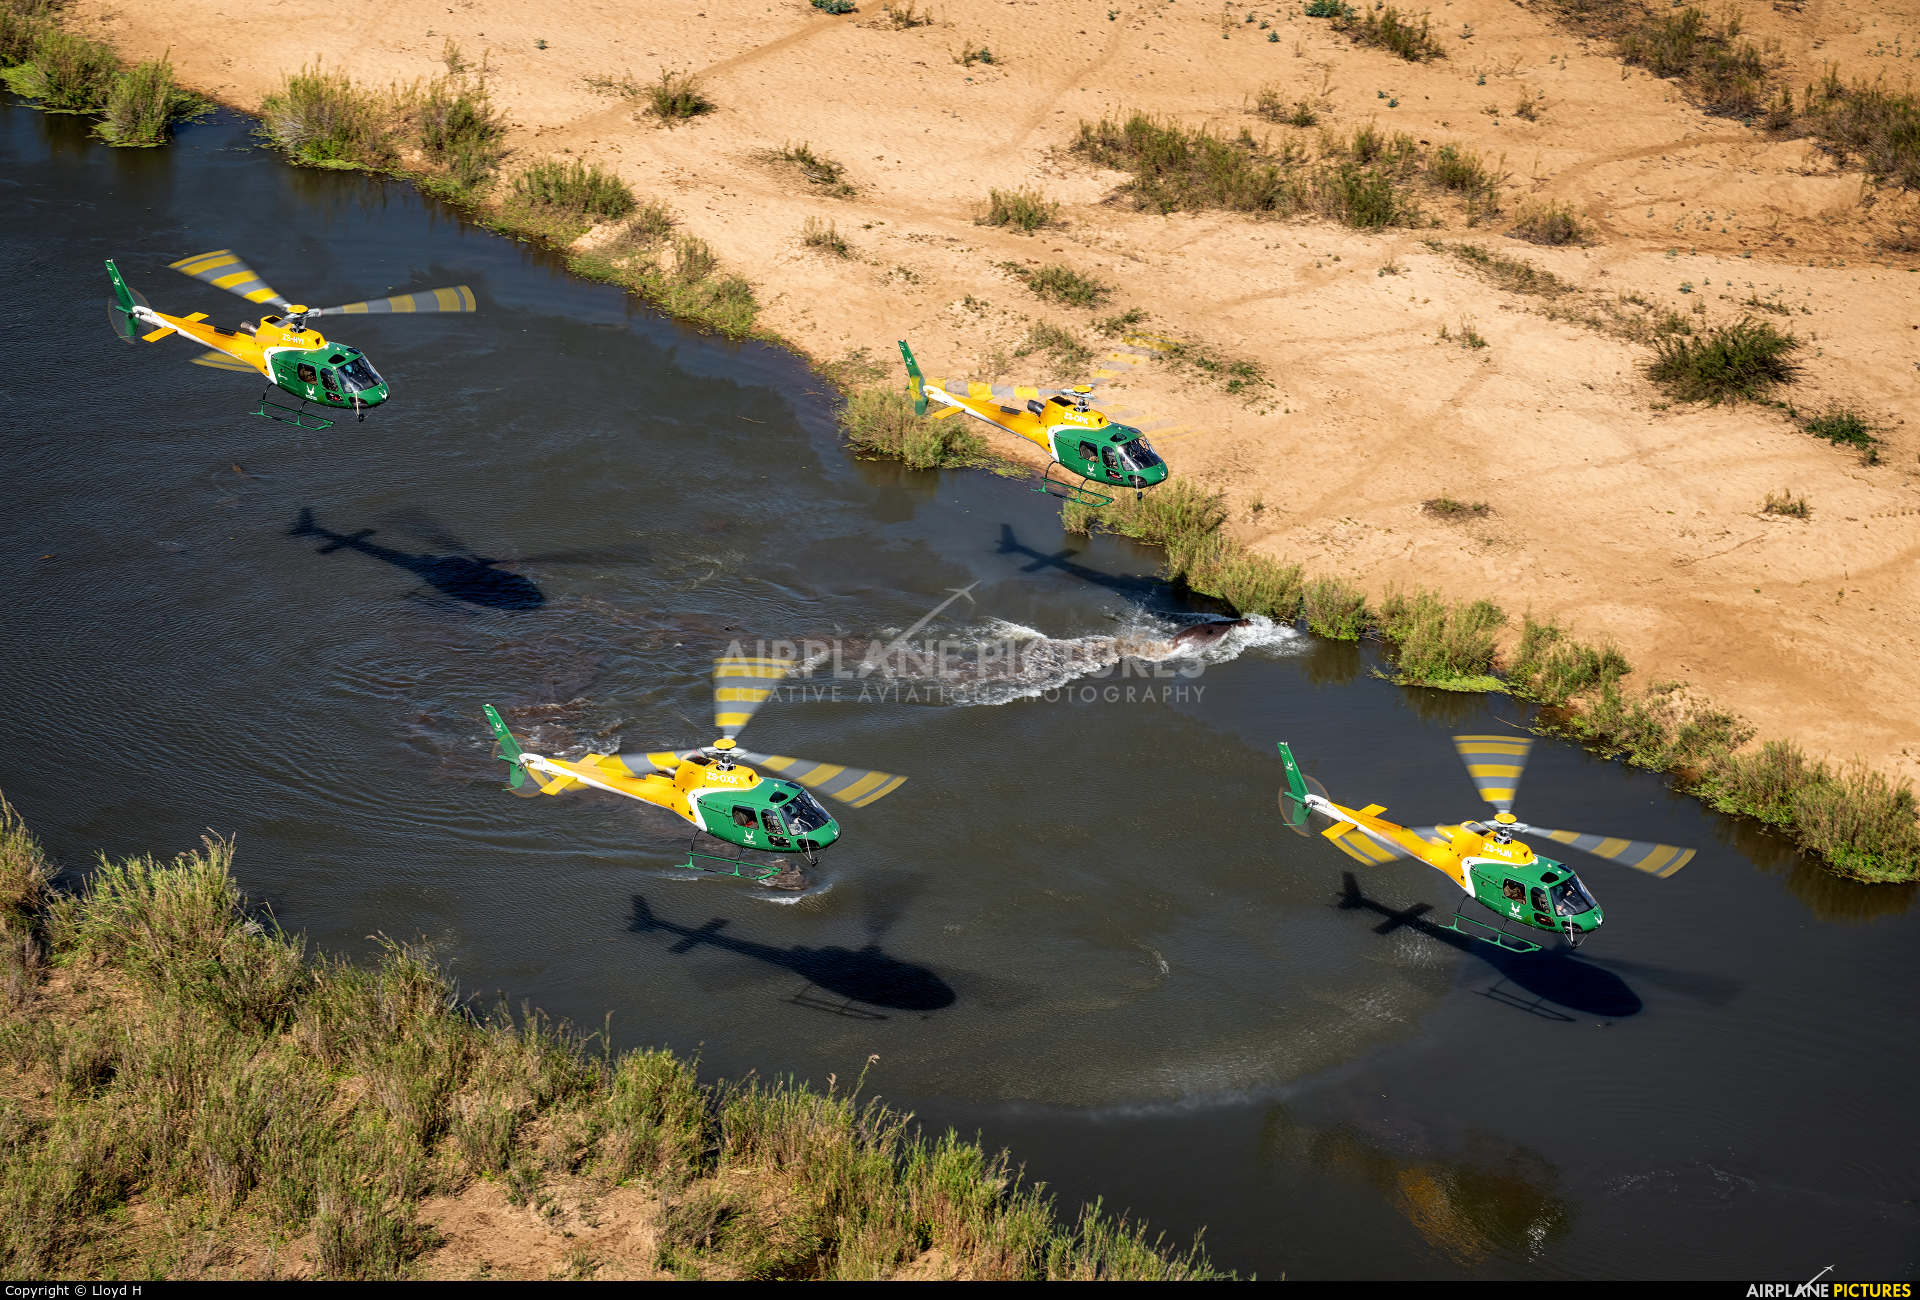 South Africa National Parks Air Wing ZS-OXK aircraft at